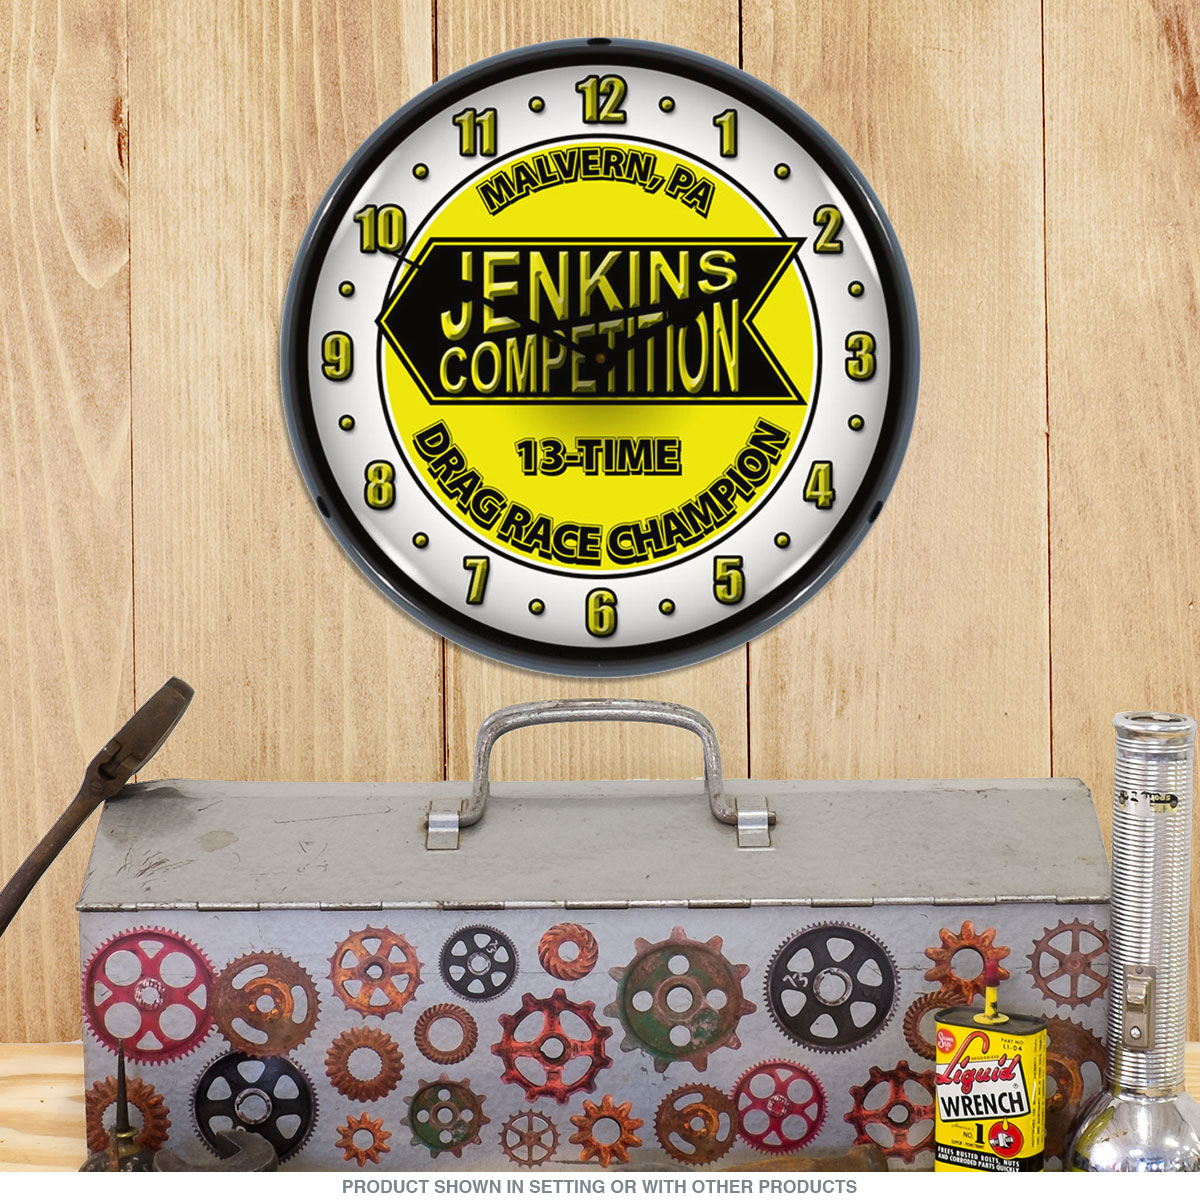 Jenkins Competition Drag Race Champion Light Up Clock